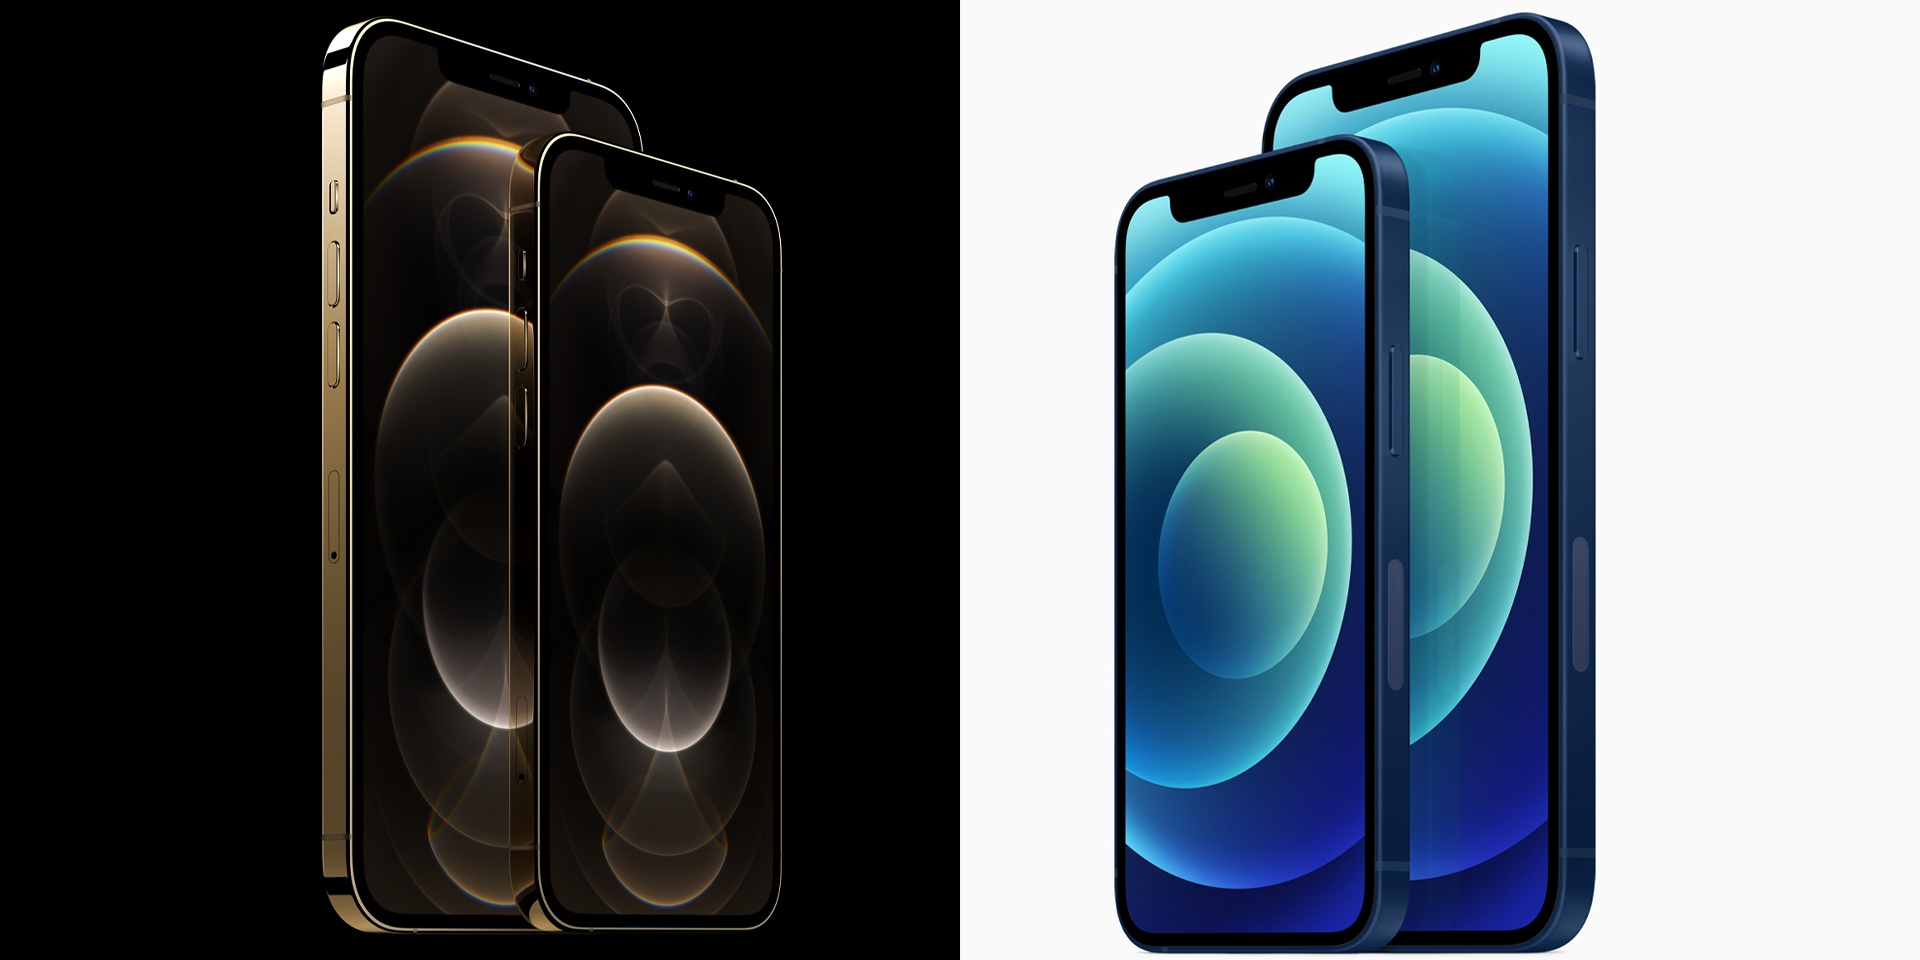 The new iPhone 12 is every creative's dream – advanced camera system, console-quality gaming experience, new Dolby Vision video, and more